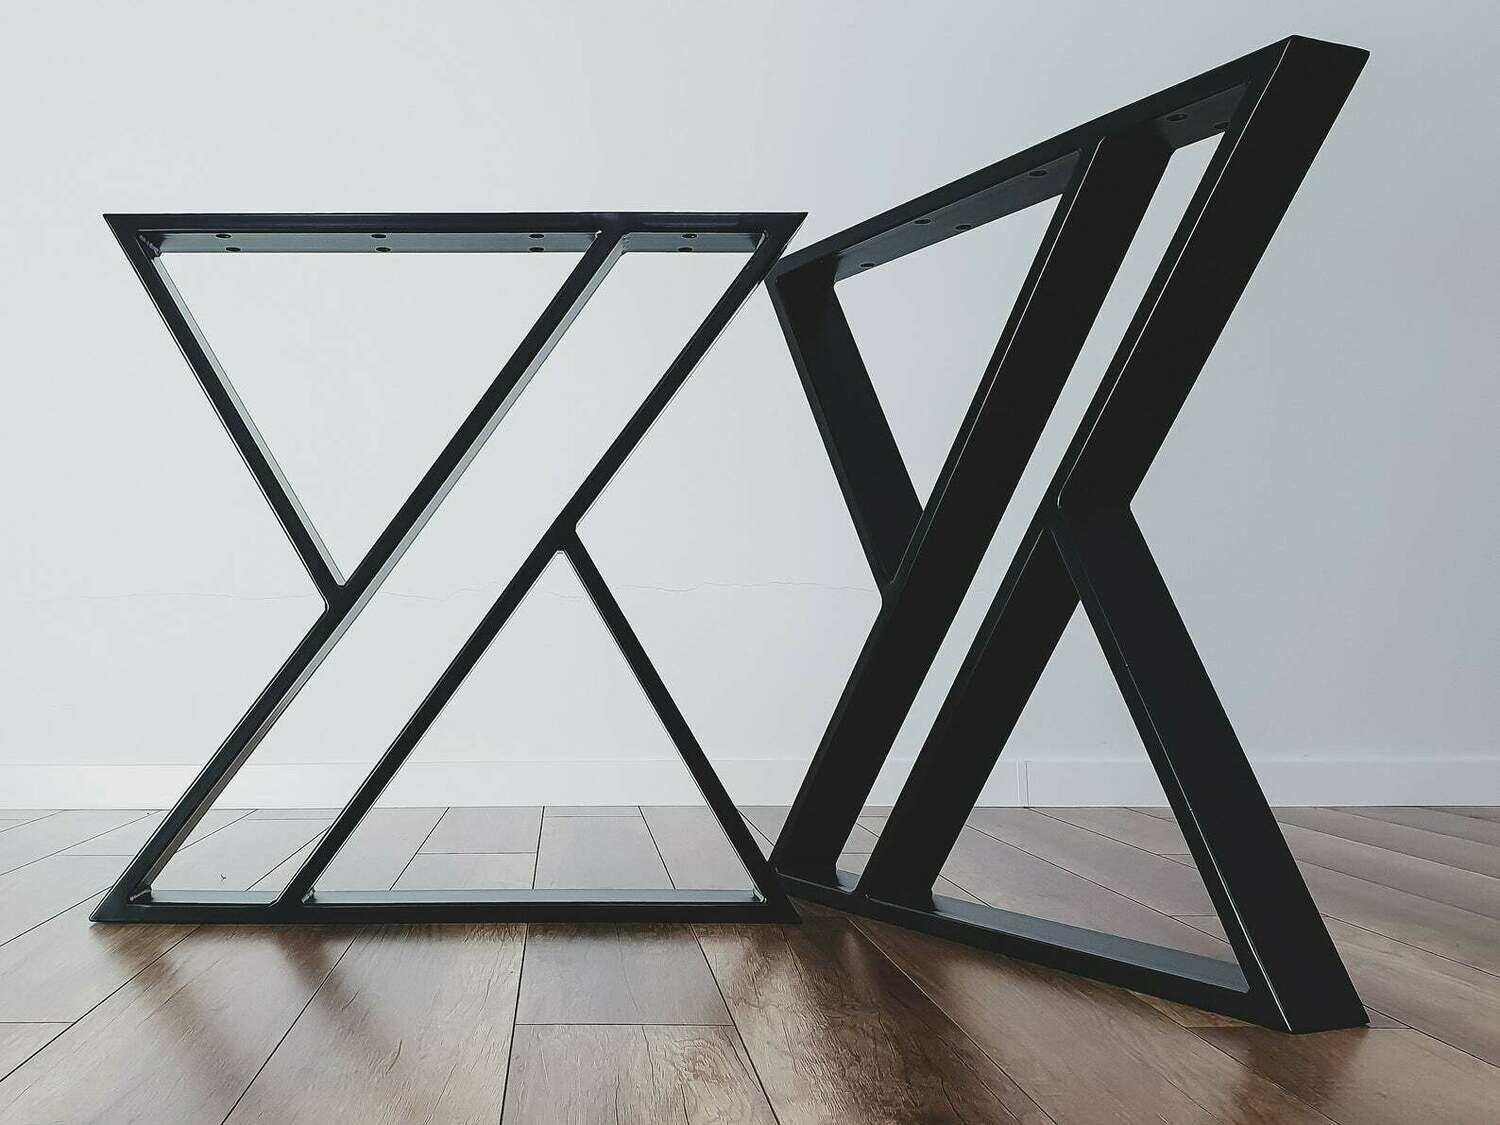 Steel Dining Table Legs (set of 2) X-shape. Modern Metal Table Legs. Industrial Table Base. Iron Legs for Reclaimed Wood. [D038]